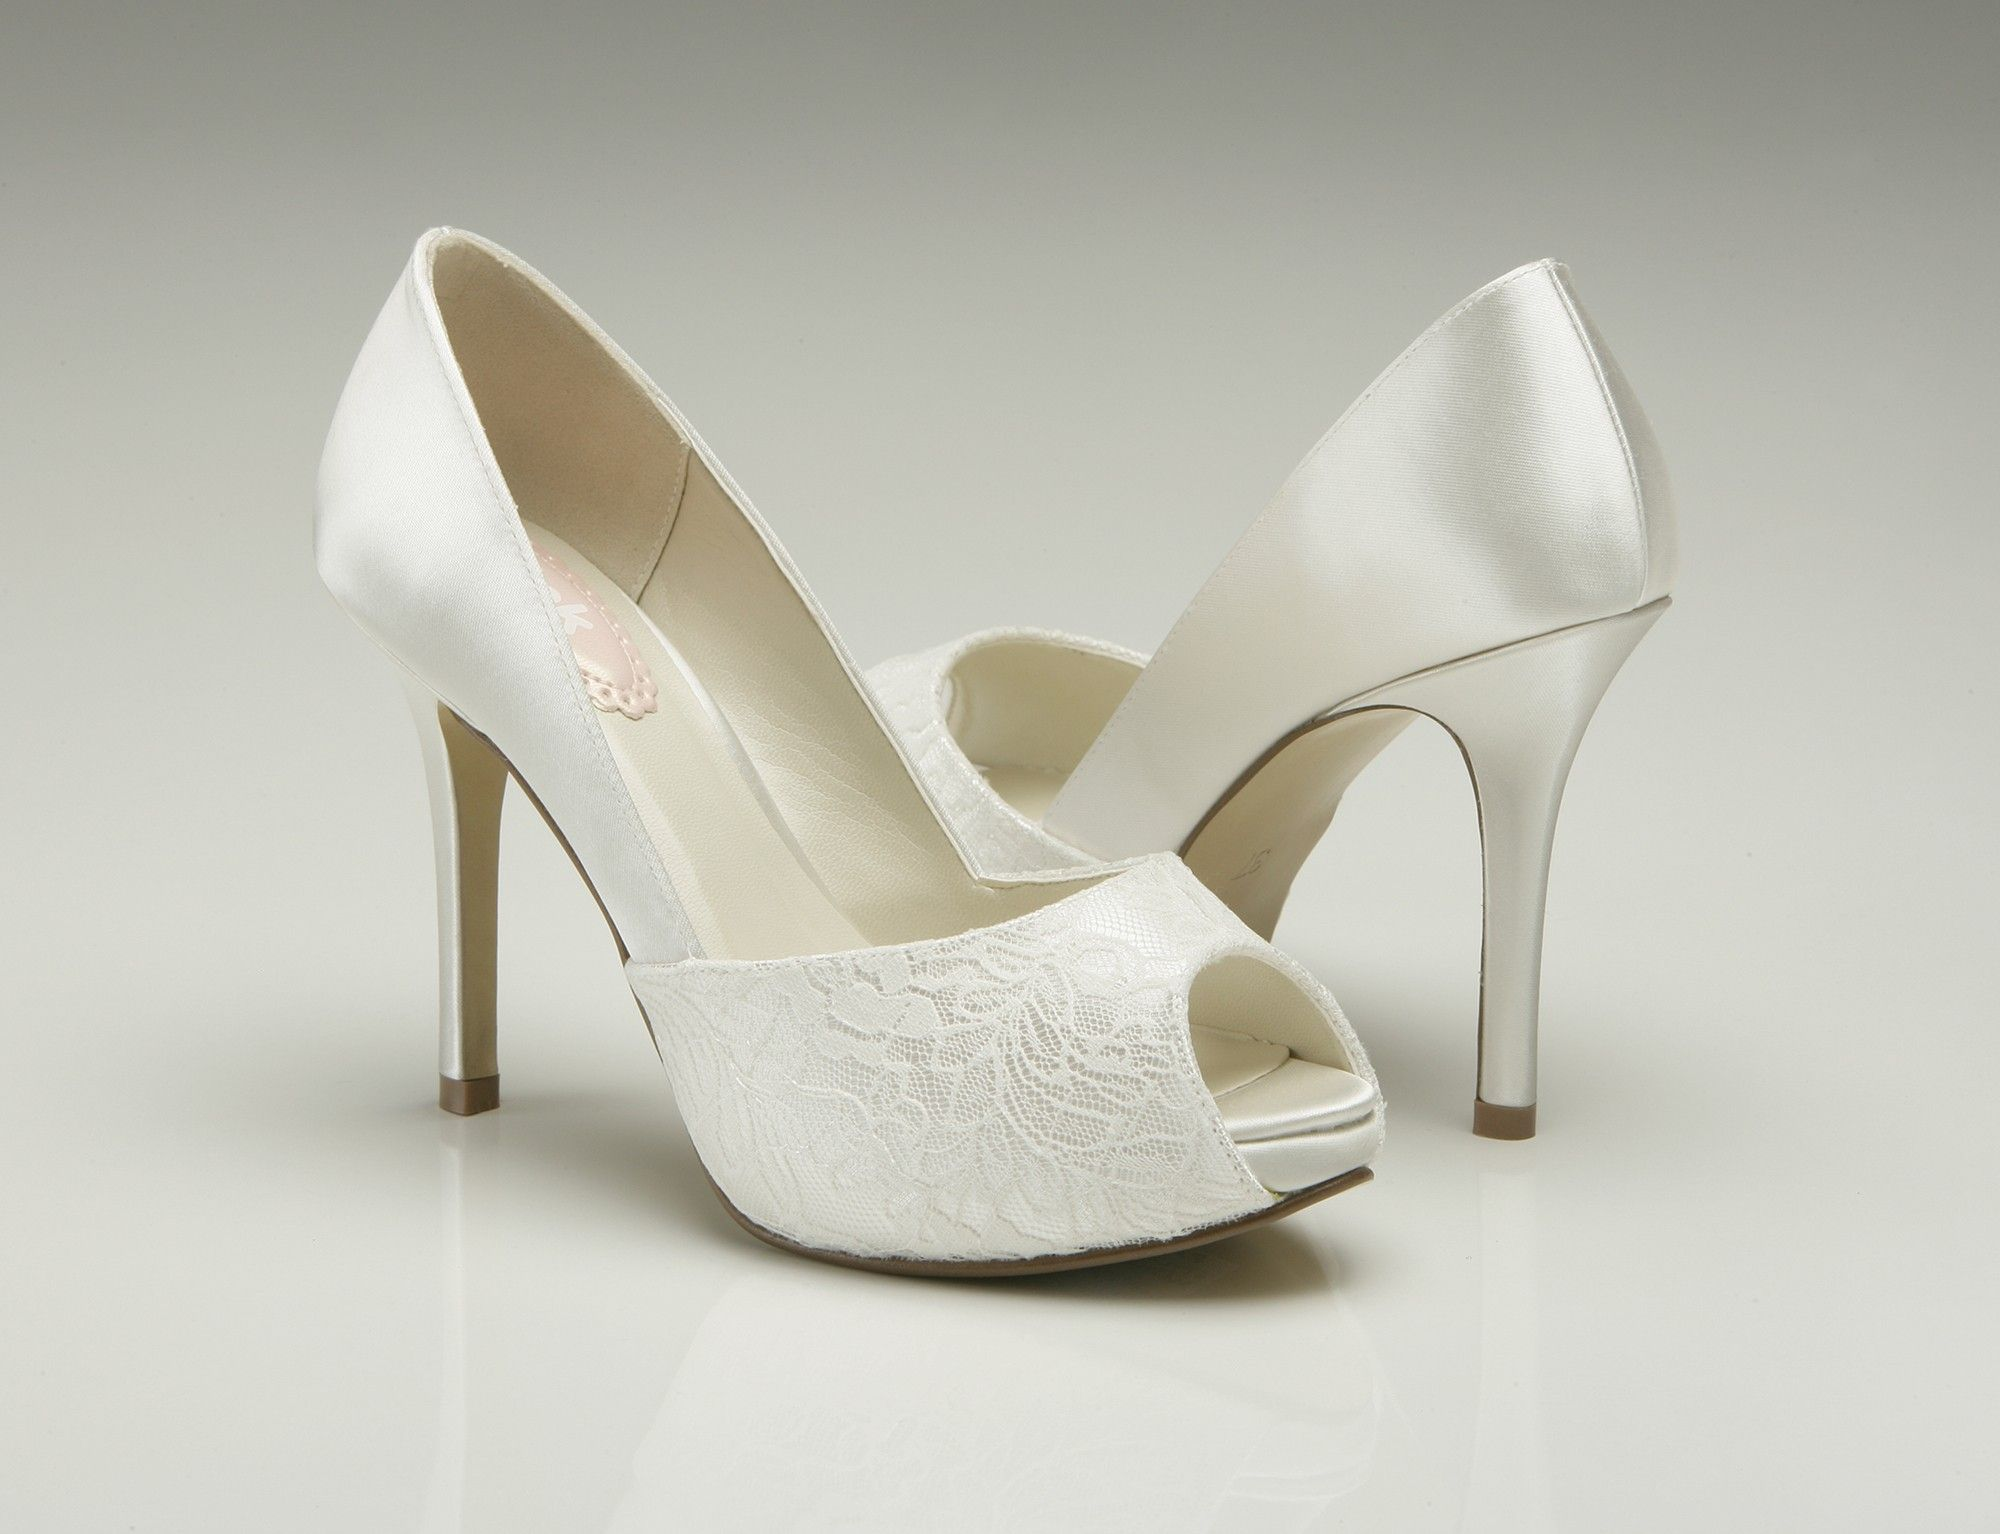 Pink Wedding Shoes Low Heel: Pink Paradox Fancy Ivory Wedding Shoes